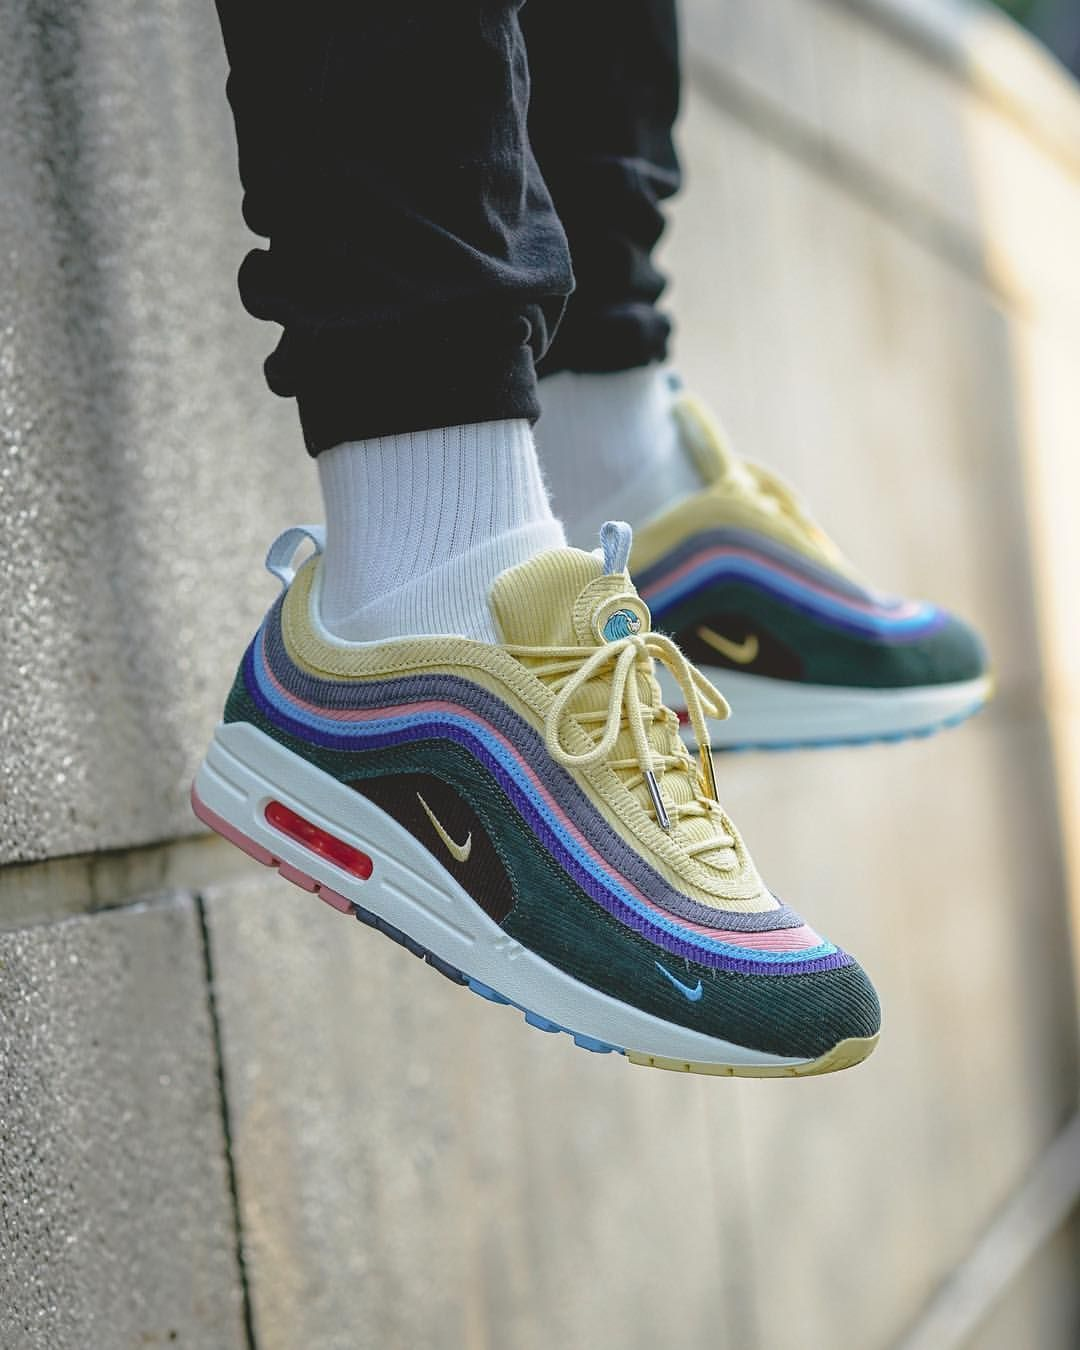 Sean Wotherspoon x Nike Air Max 97/1 - http://shoes.